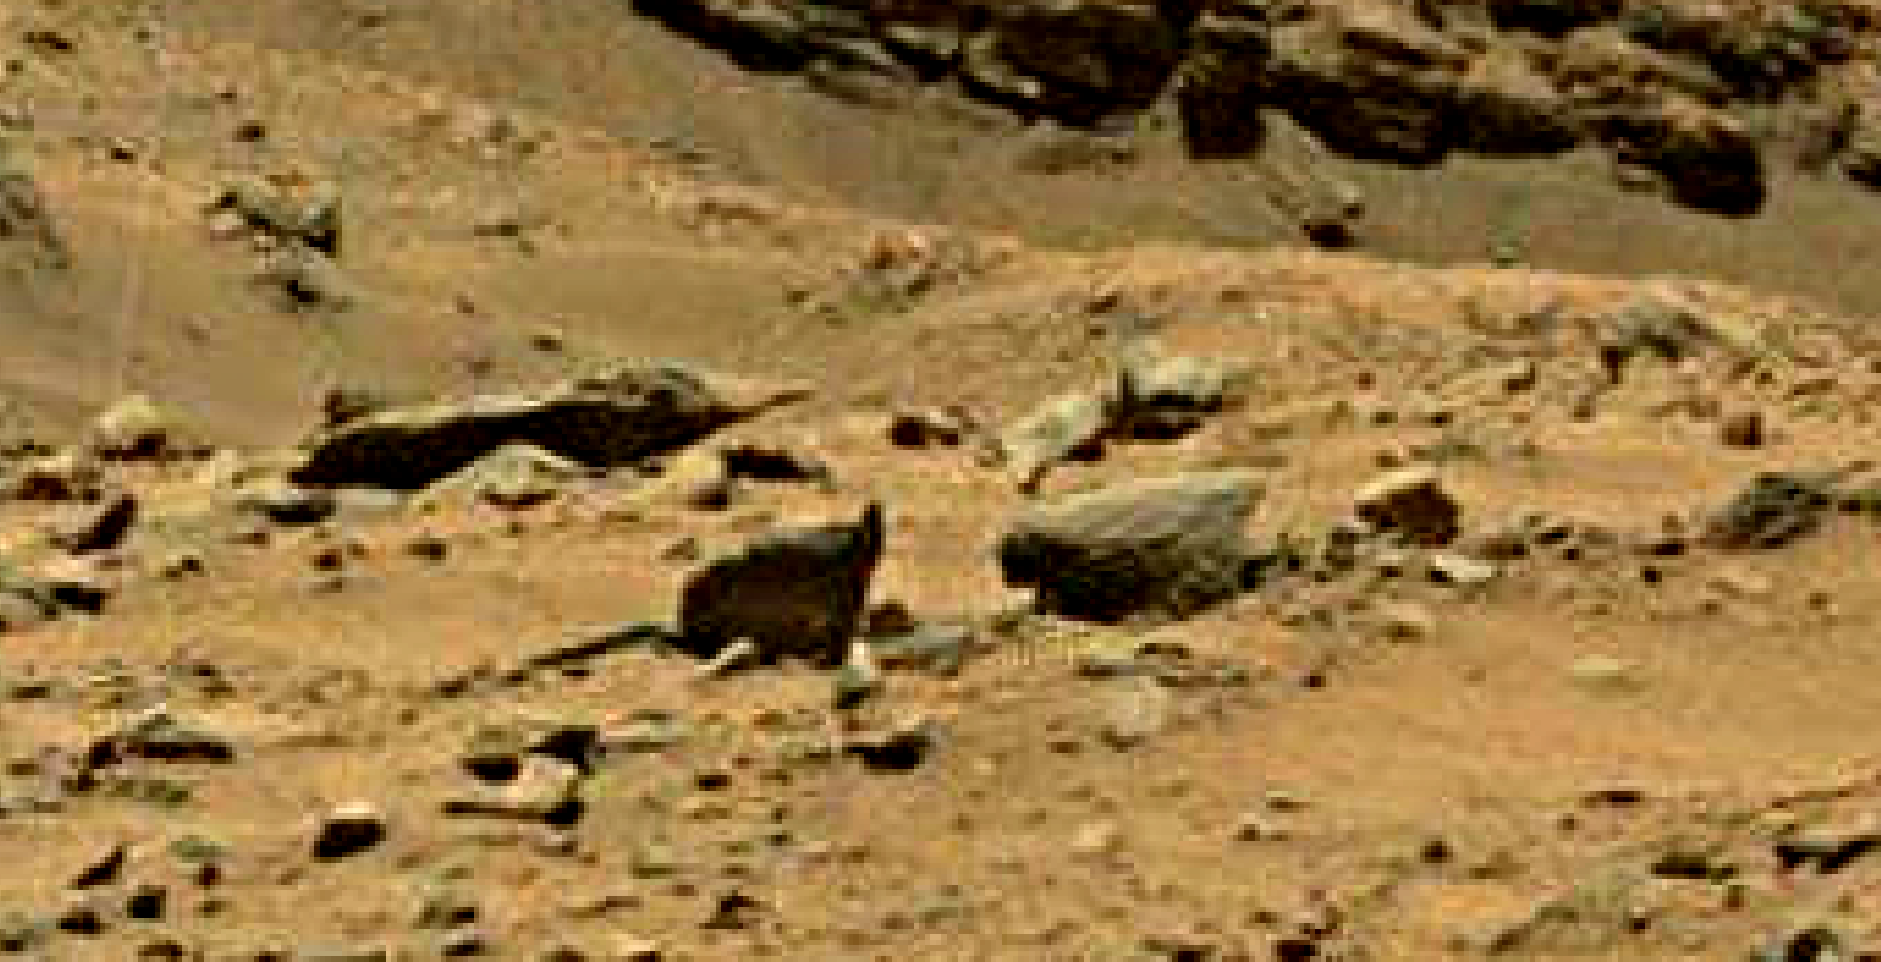 mars sol 1399 anomaly artifacts 12 was life on mars